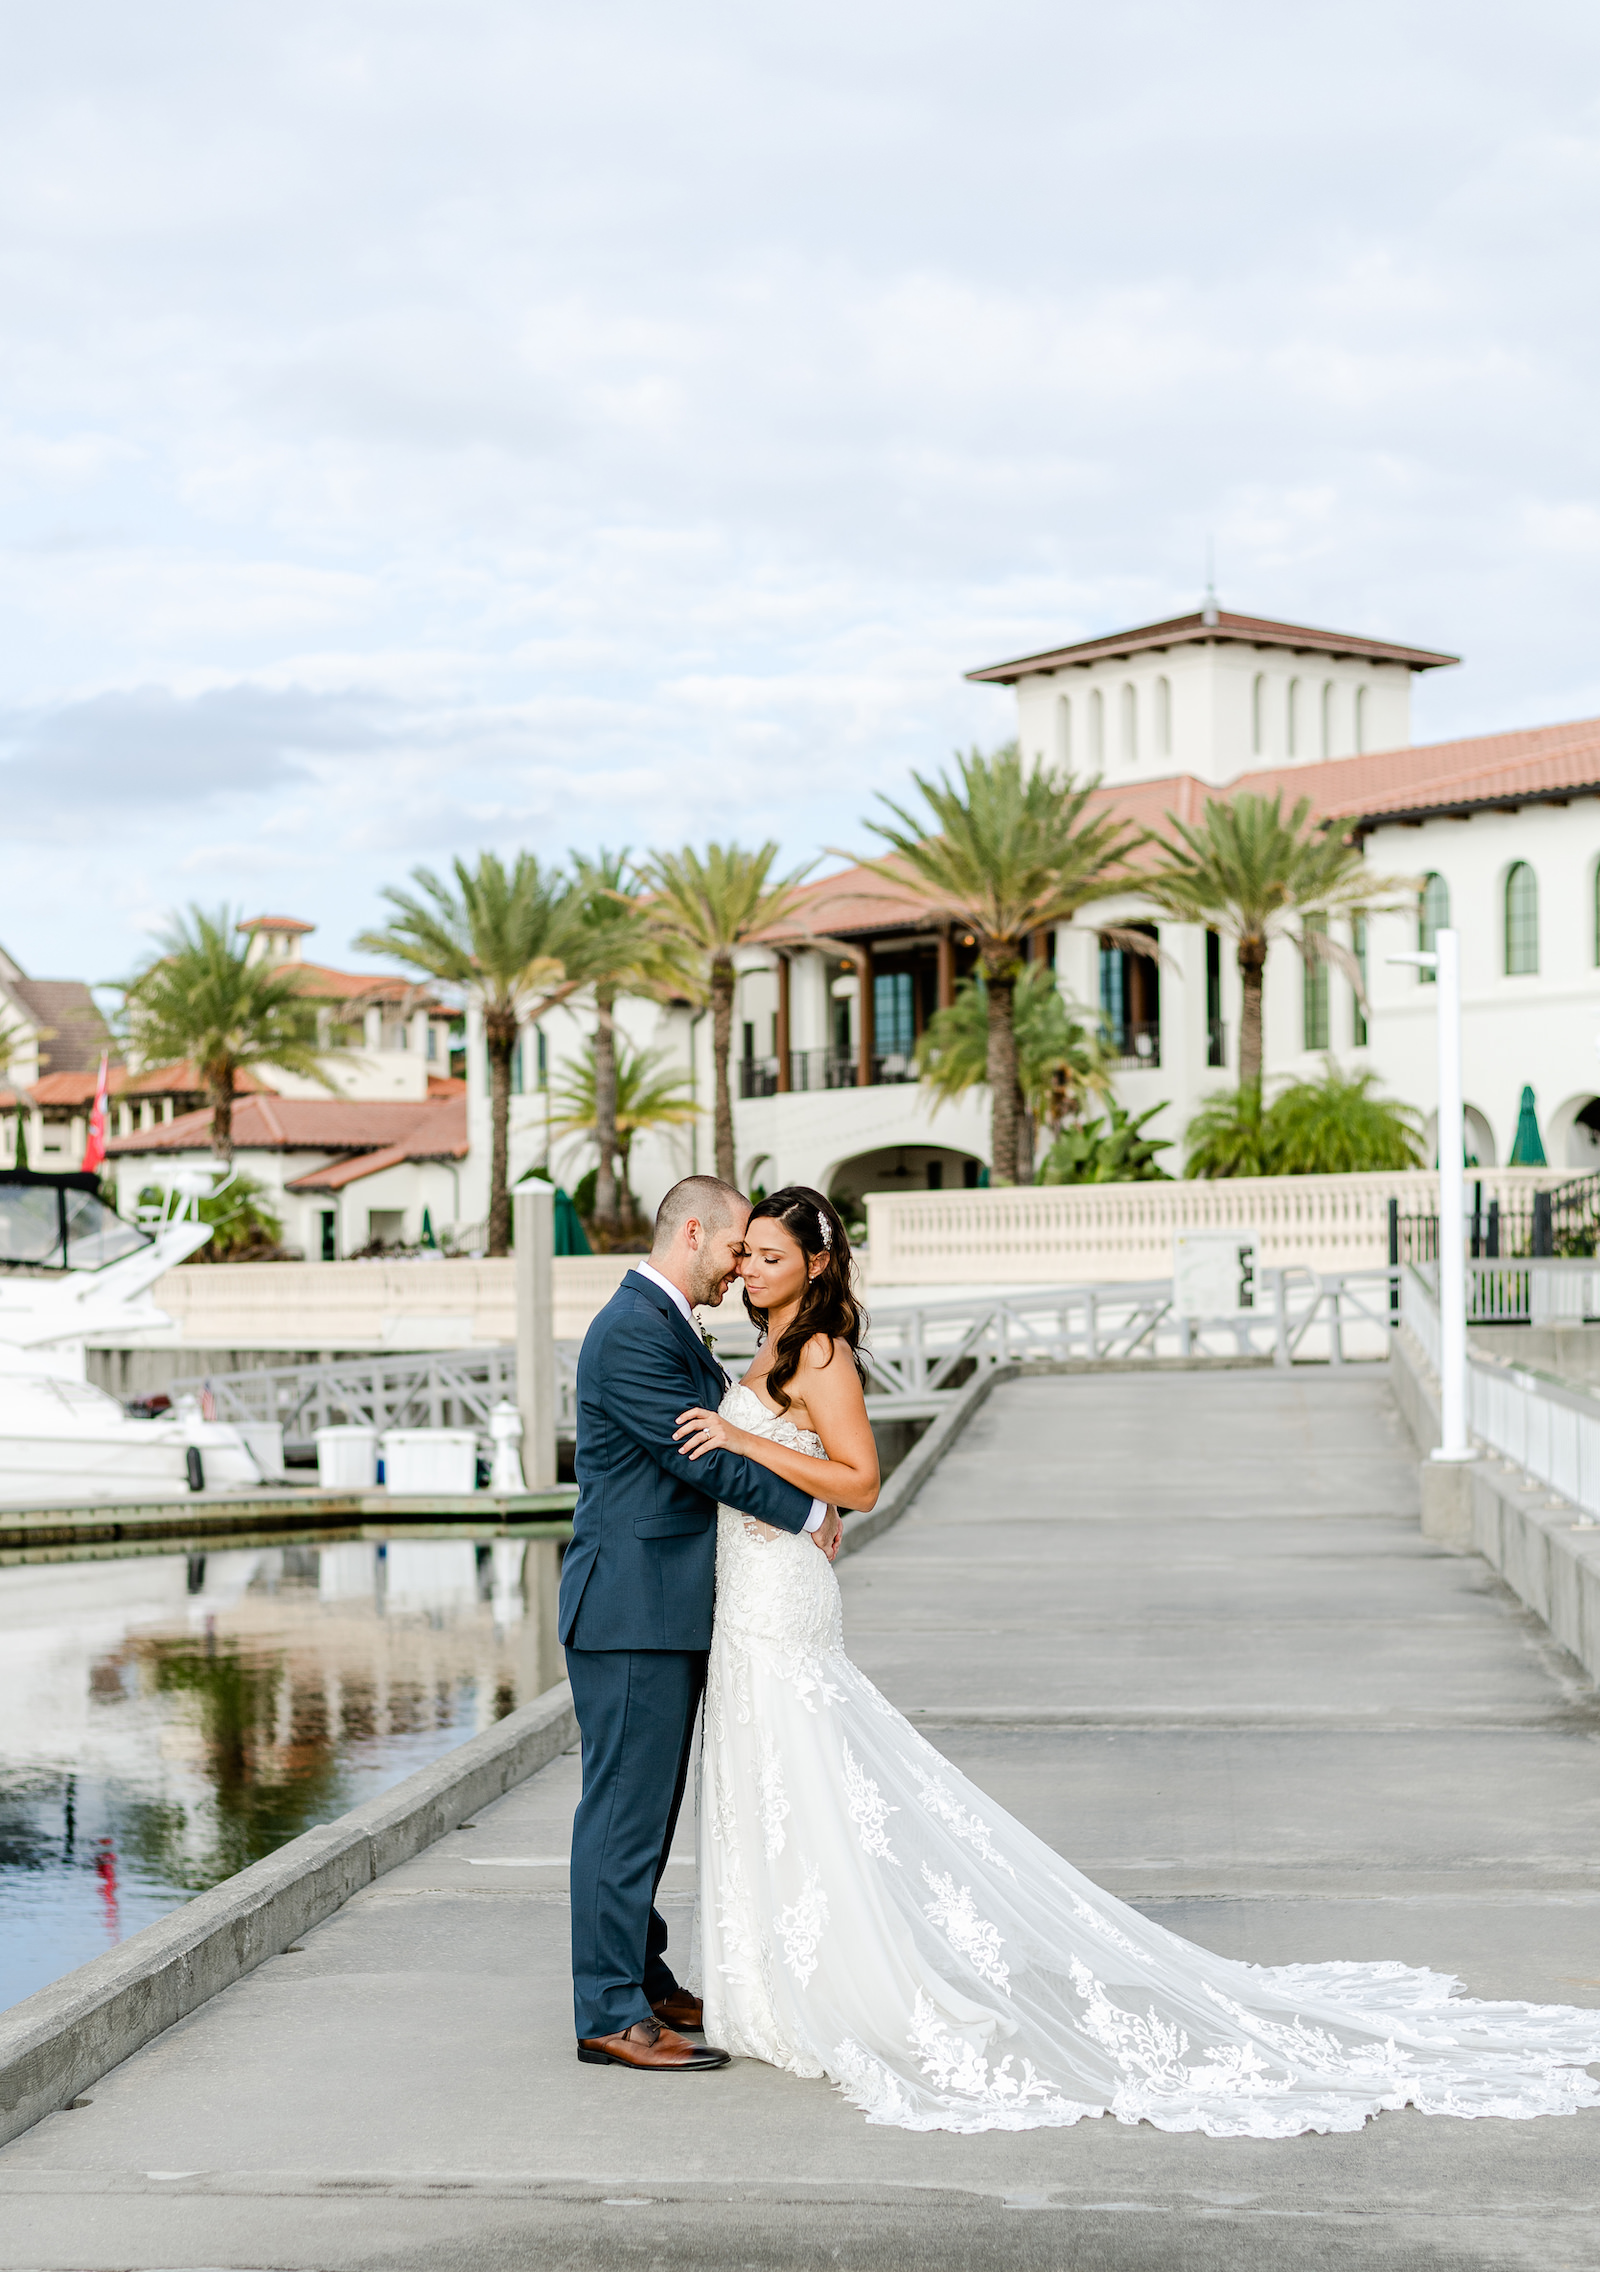 Bride and Groom Outdoor Portrait along Marina Dock at Tampa wedding venue westshore Yacht Club | Lace Strapless Sweetheart Scalloped Edge Train Wedding Dress Bridal Gown | Groom Wearing Classic Navy Suit | Dewitt for Love Photography